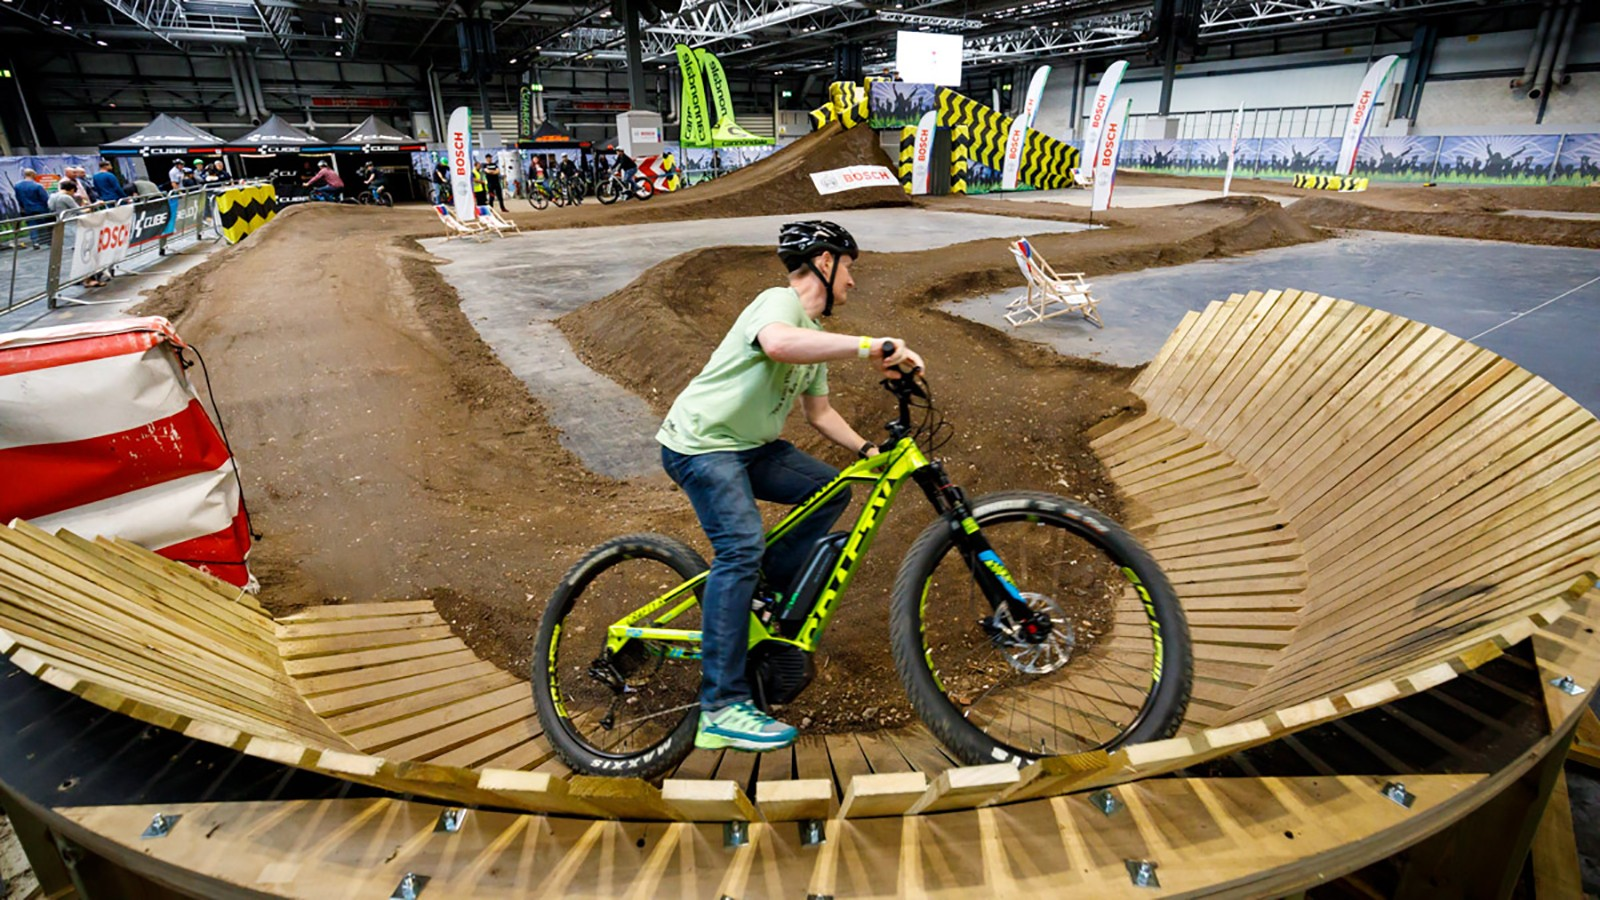 Test out an e-bike on the indoor track